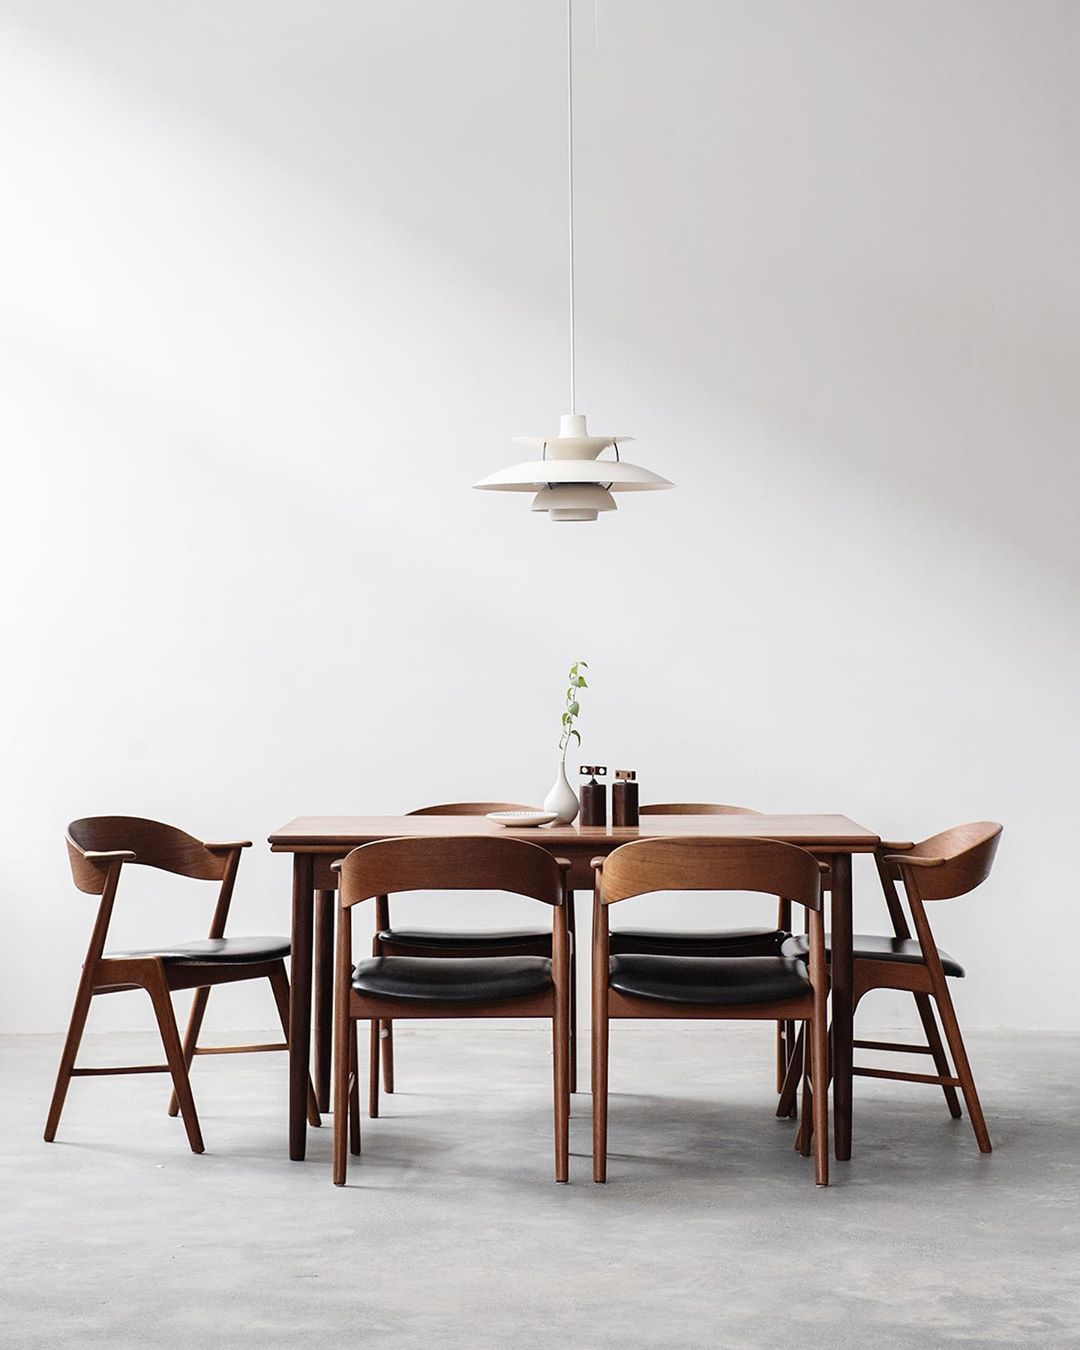 Noden On Instagram Just Delivered This Fully Restored Vintage Danish Dining Table In Teak To Her Danish Dining Table Danish Dining Chairs Dining Table Chairs